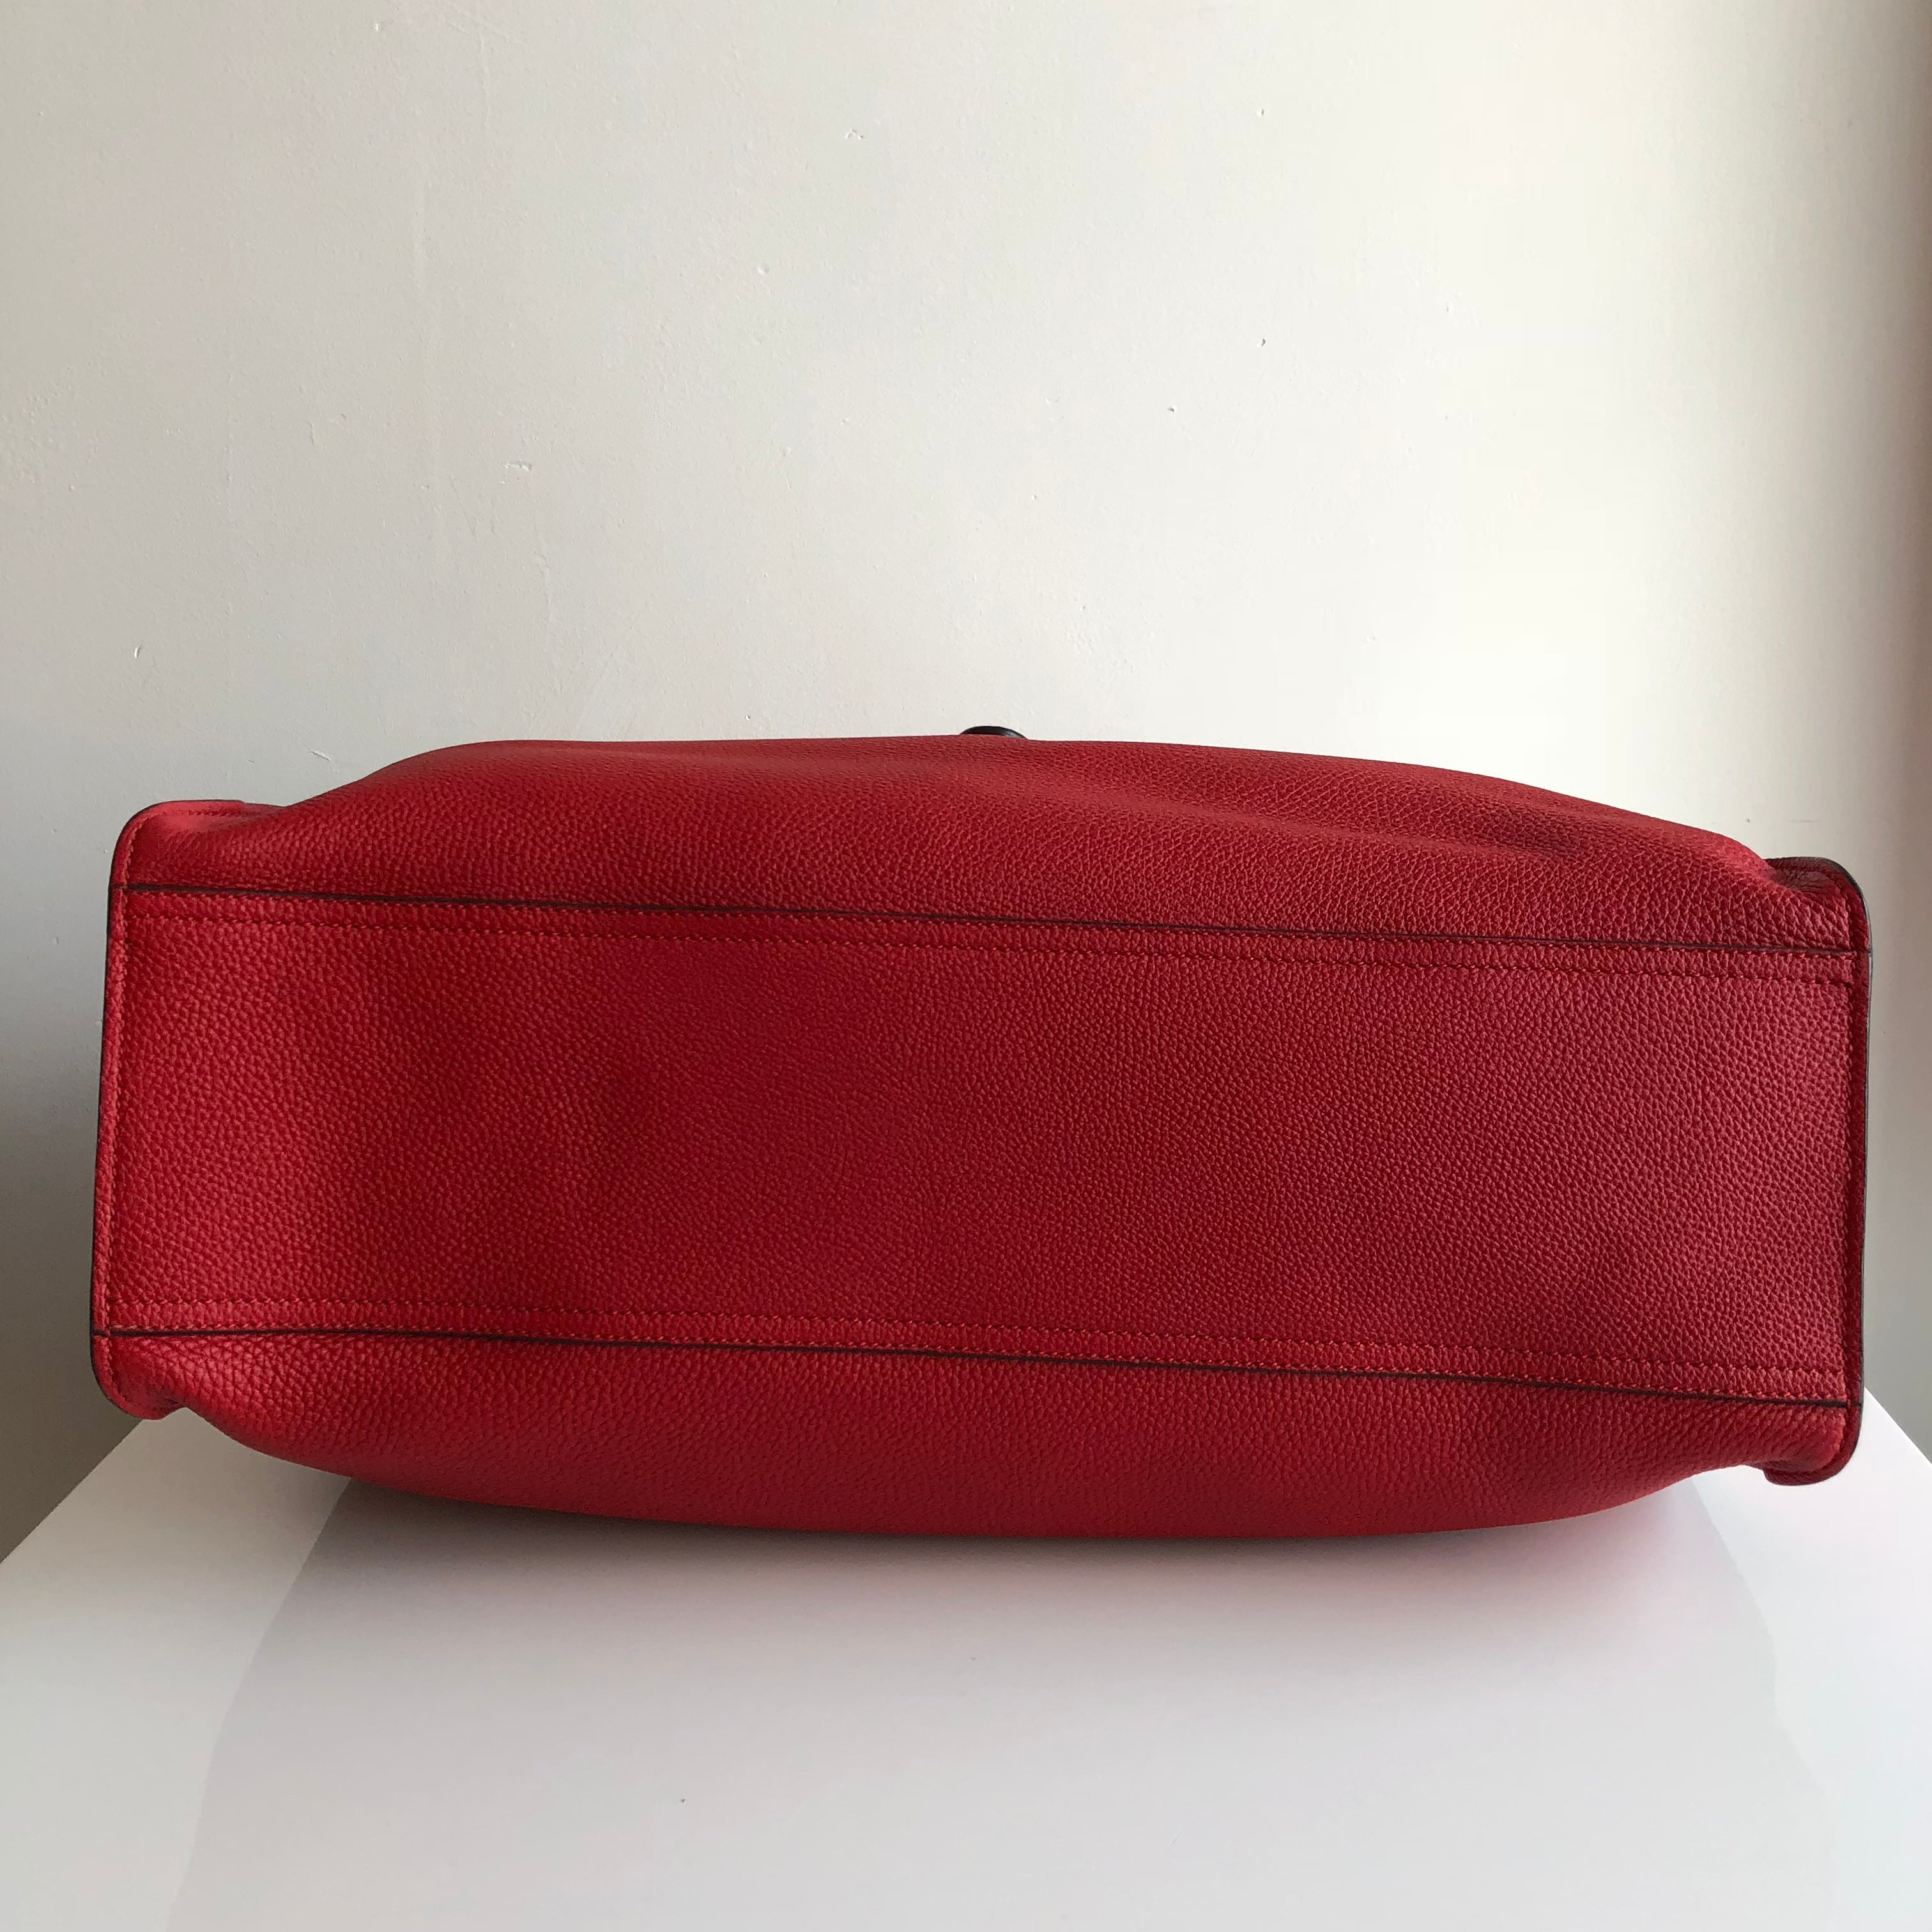 Authentic GUCCI Jacki Soft Large Leather Tote Red